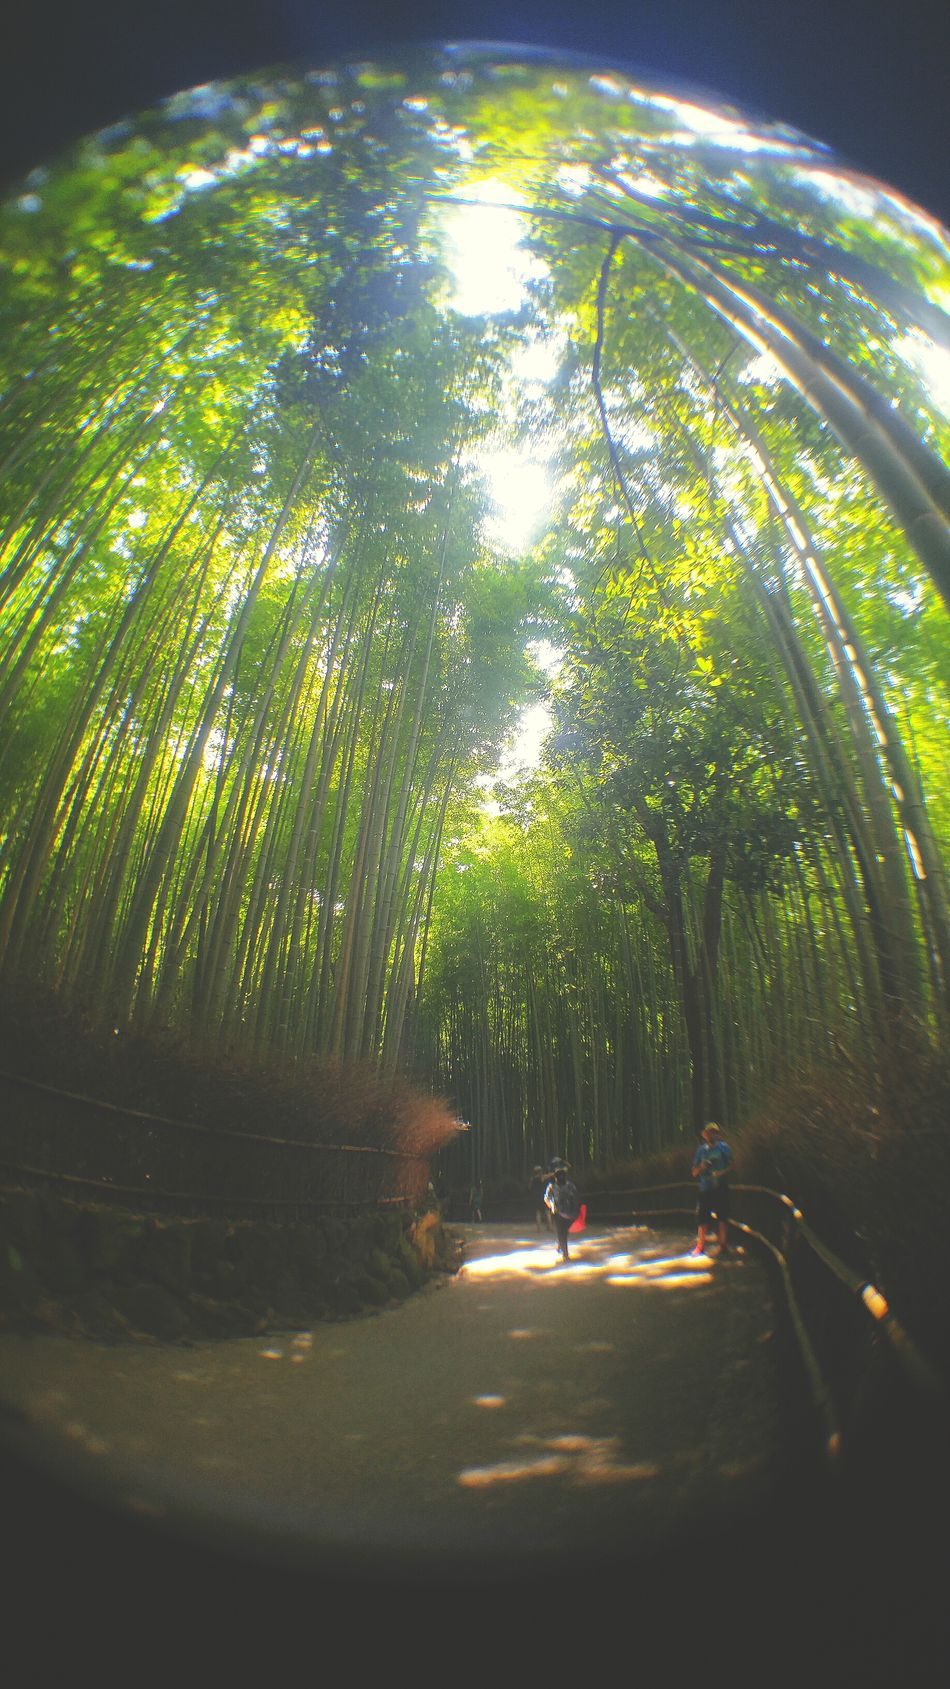 Beauty In Nature Latergram LGV10 Fish Eye Fish Eye Lens Landscape_photography Smartphonephotography Bamboo Forest EyeEm Best Shots Sunlight Travel Destinations 京都 Bamboo Grove Afterlight Outdoors EyeEm Gallery Travel Photography Tranquility Being A Tourist Latepost Japan Photography Bamboo Melancholic Landscapes From My Point Of View Tourist Destination